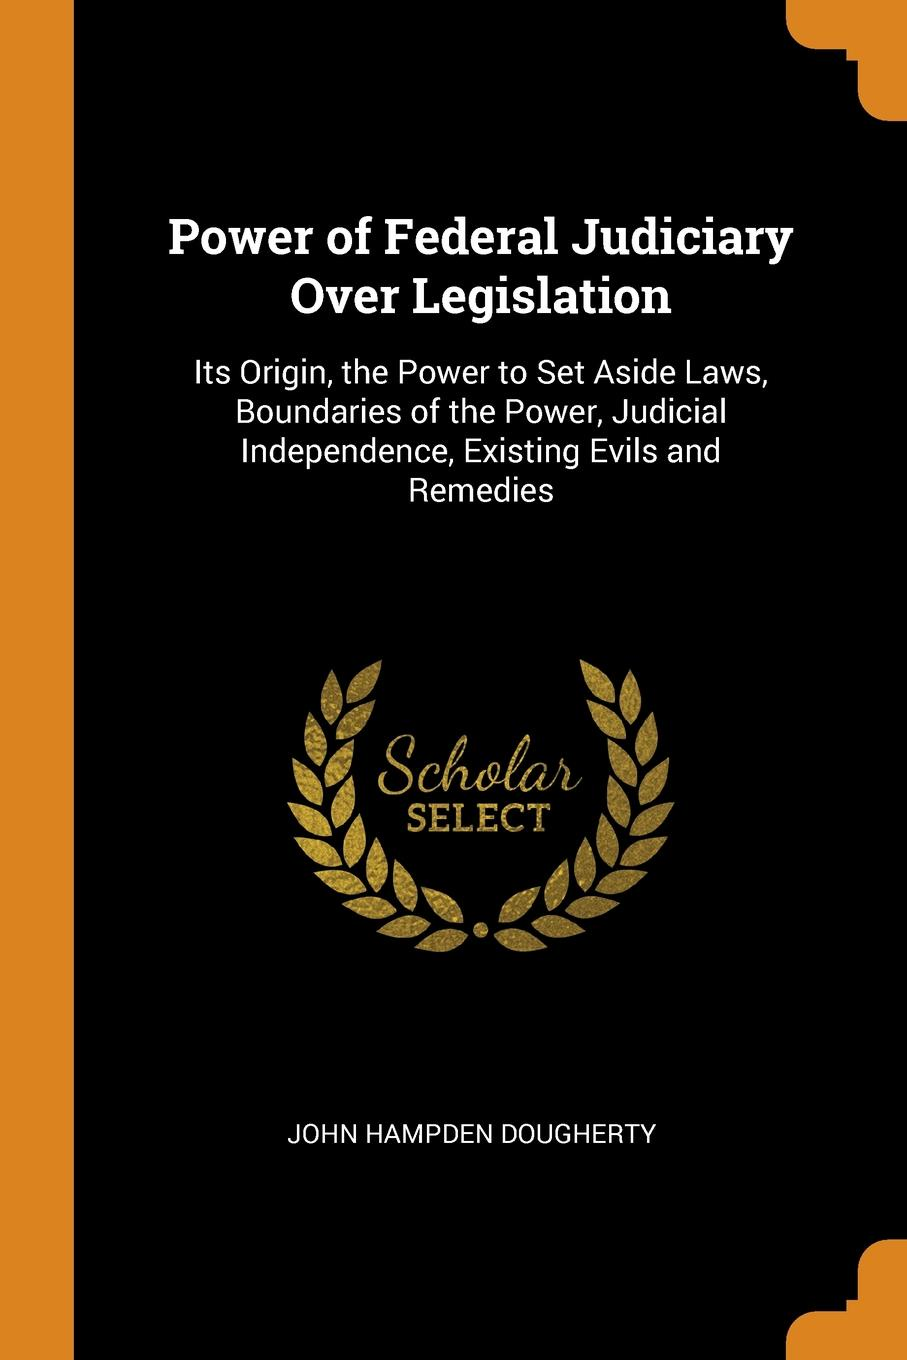 Power of Federal Judiciary Over Legislation. Its Origin, the Power to Set Aside Laws, Boundaries of the Power, Judicial Independence, Existing Evils and Remedies. John Hampden Dougherty